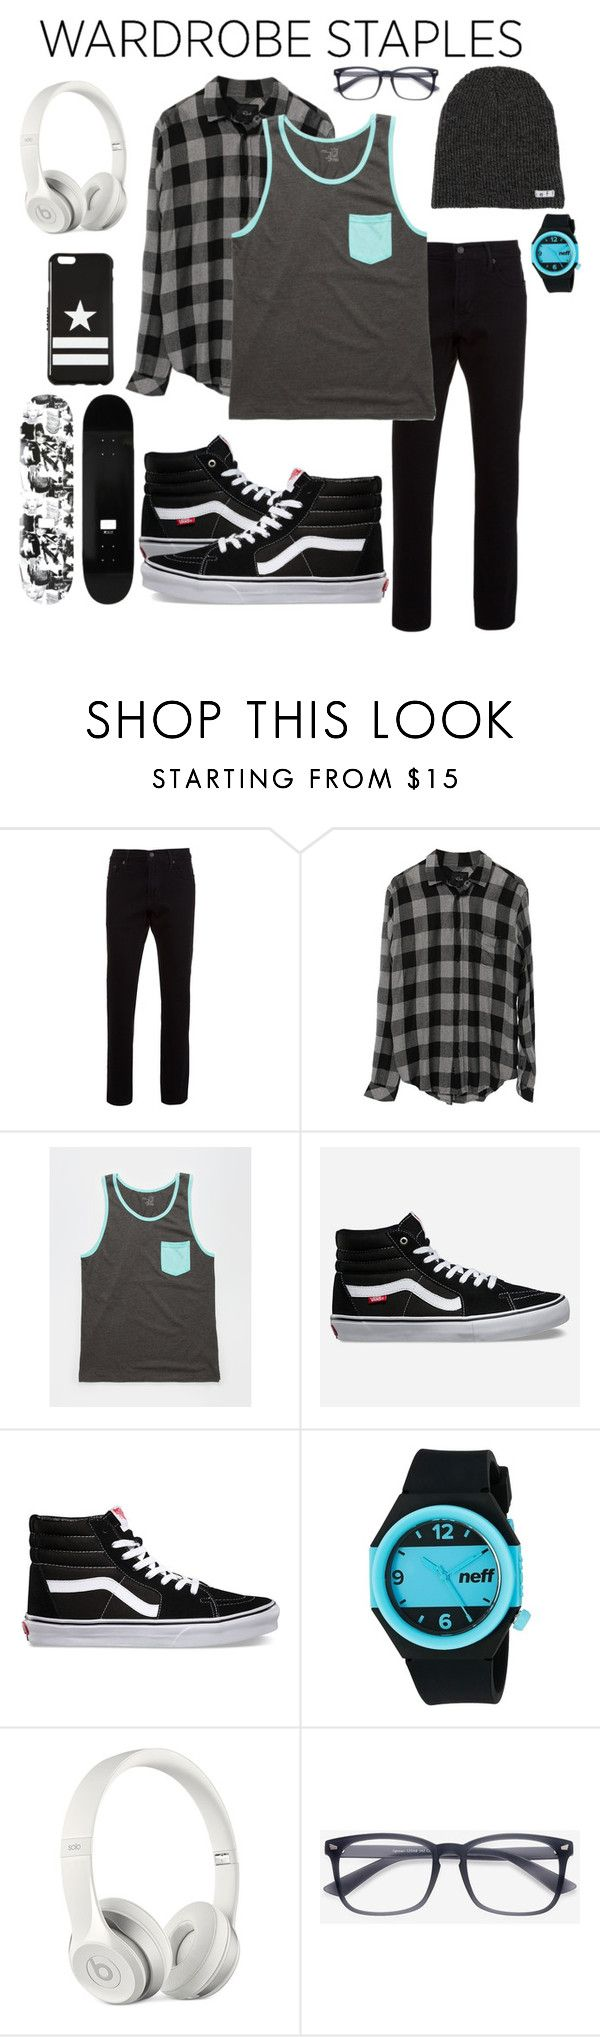 """""""Mad for Plaid: Skater boy"""" by tris1316 ❤ liked on Polyvore featuring WeSC, Levi's, Rails, Blue Crown, Vans, Neff, Beats by Dr. Dre, Givenchy, men's fashion and menswear"""